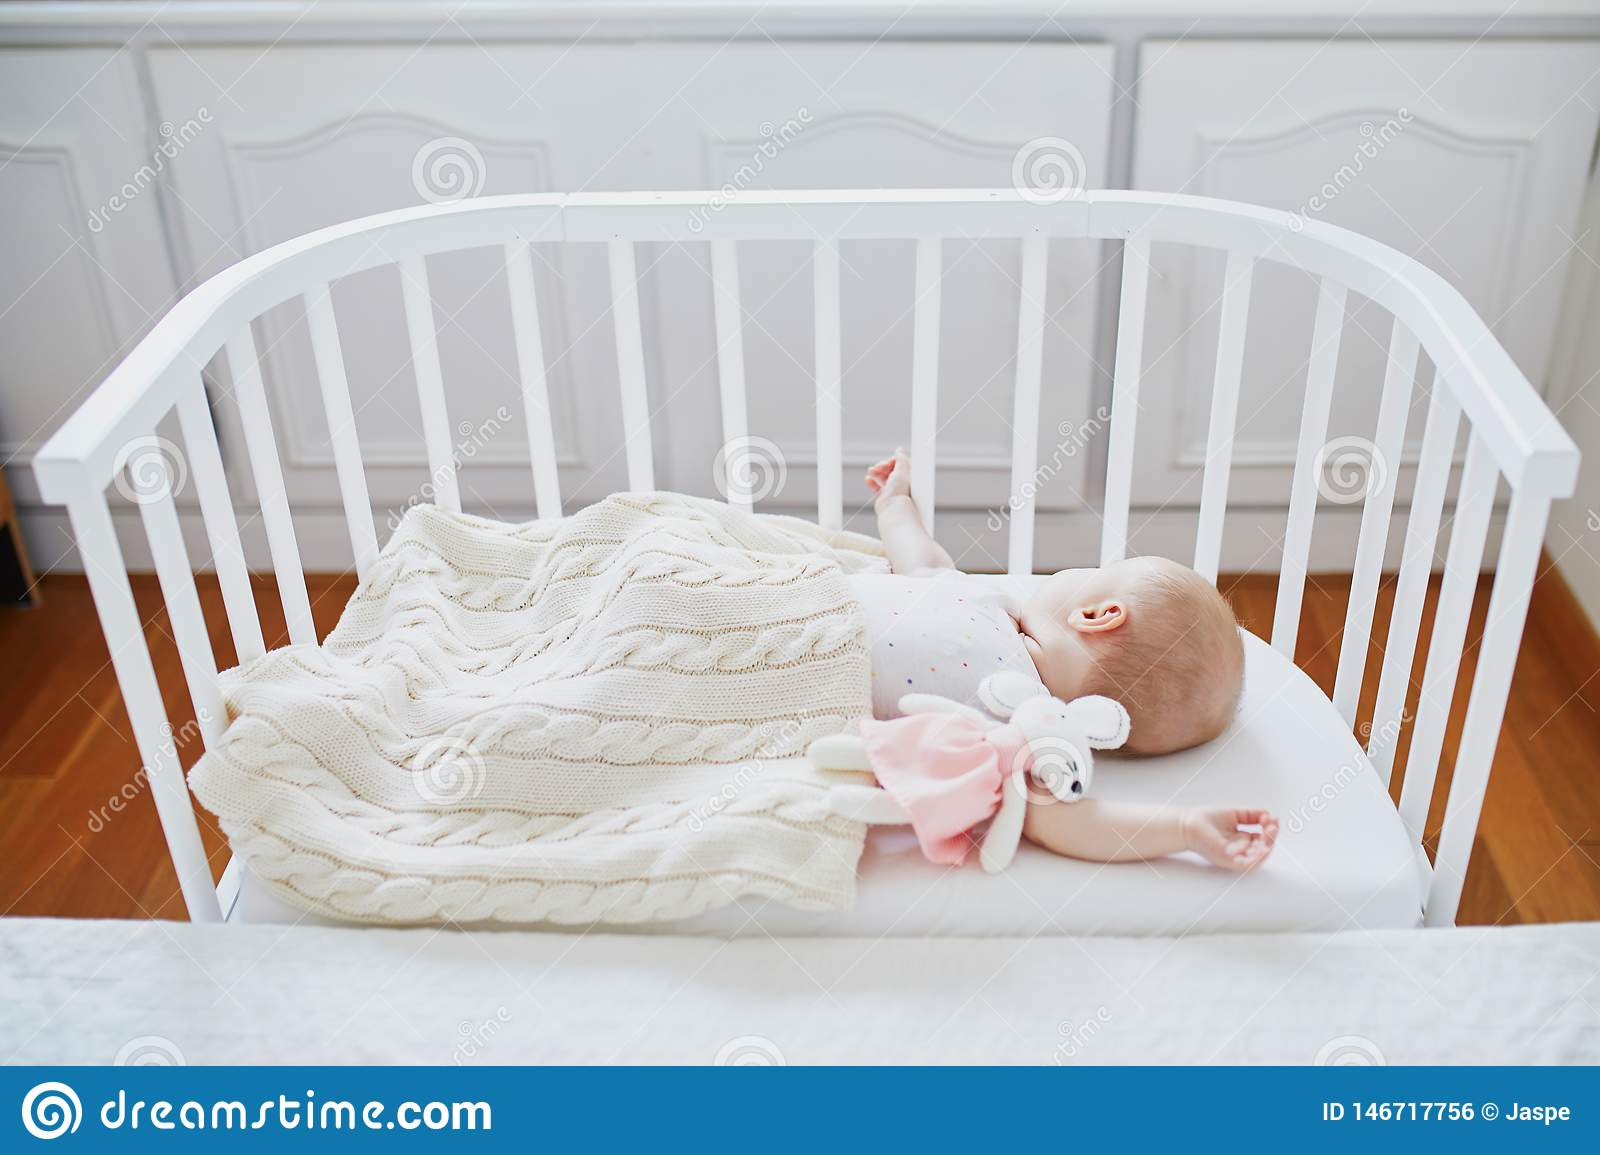 Baby Sleeping In Co-sleeper Crib Attached To Parents` Bed ...